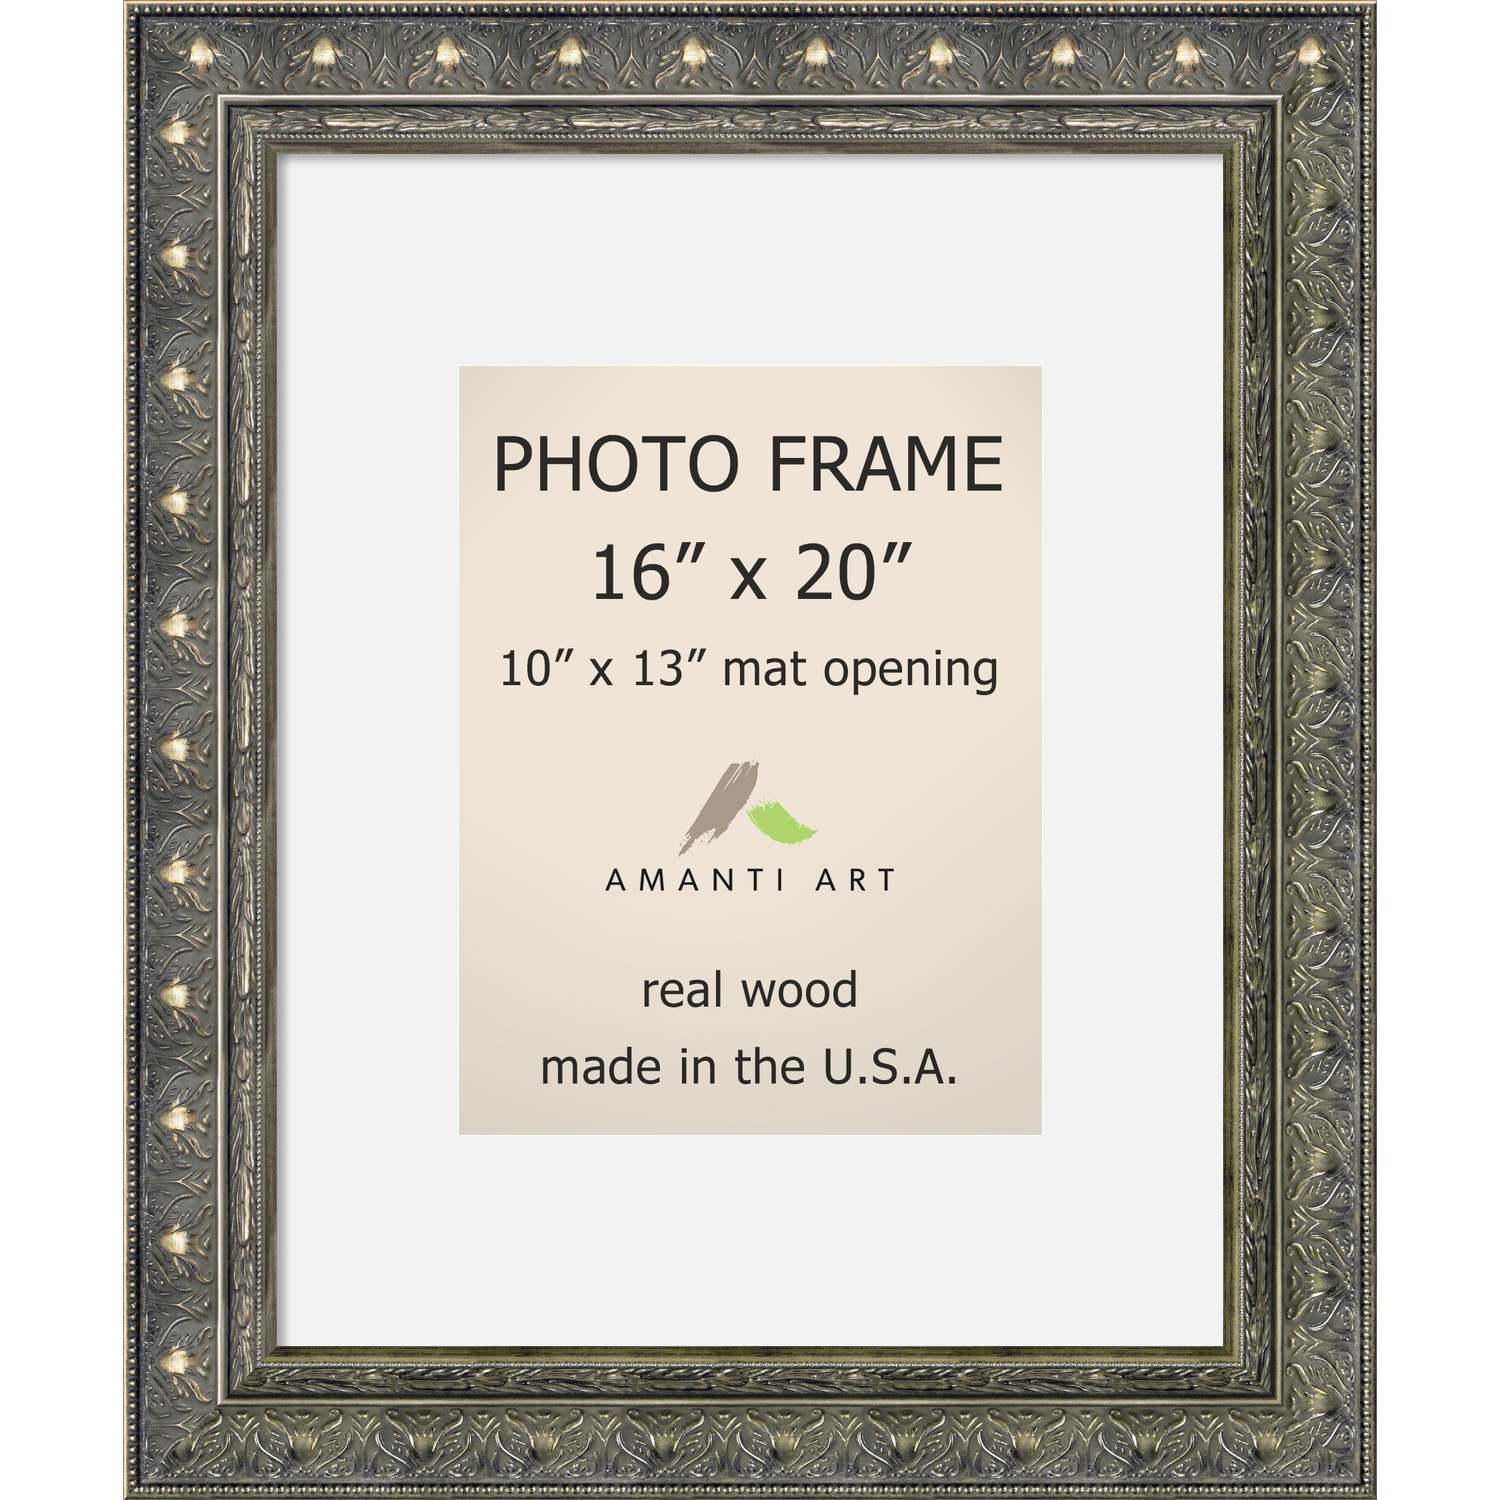 Shop Barcelona Pewter Photo Frame 16x20, Matted to 10x13\' 20 x 24 ...